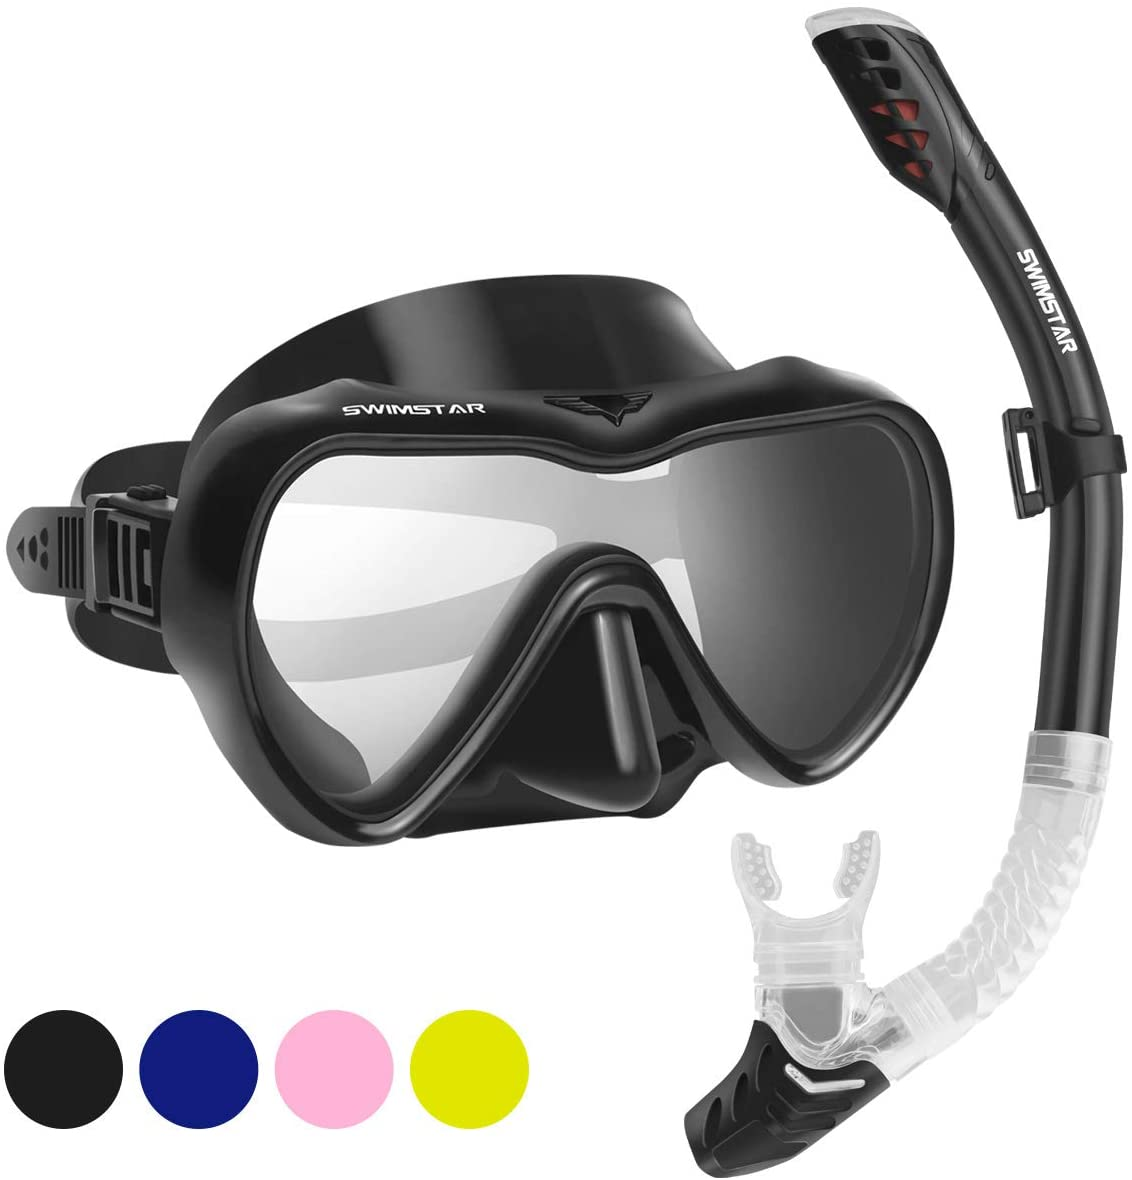 SwimStar Snorkel Set for Women and Men